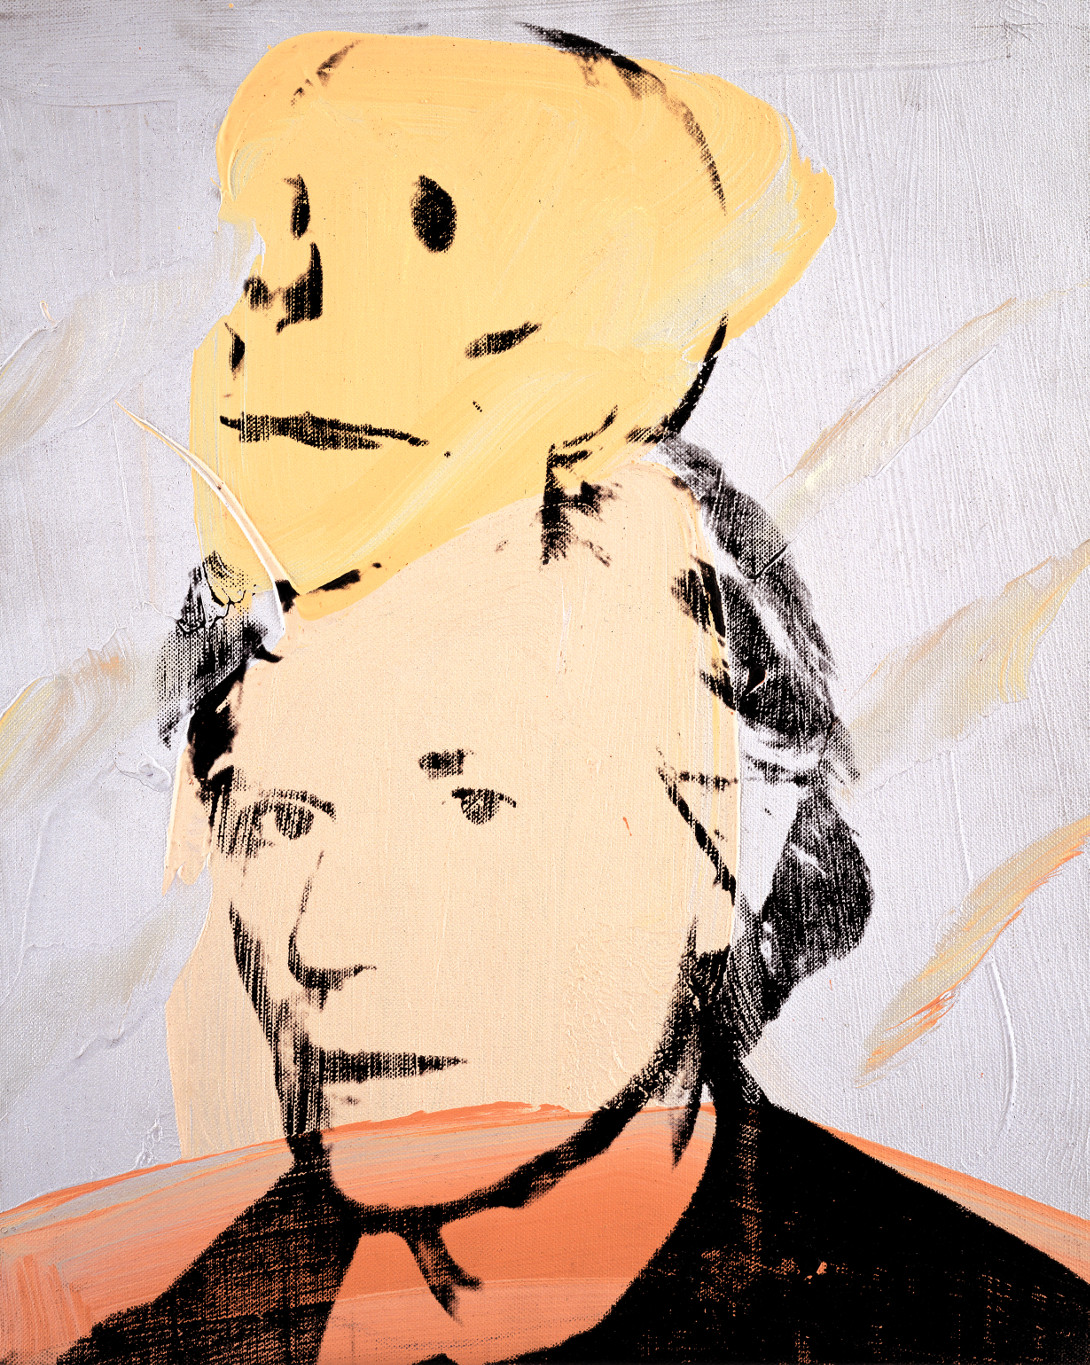 'A walking Gallup poll' - the social side of Andy Warhol's incredible creativity according to Arnold Lehman of Phillips